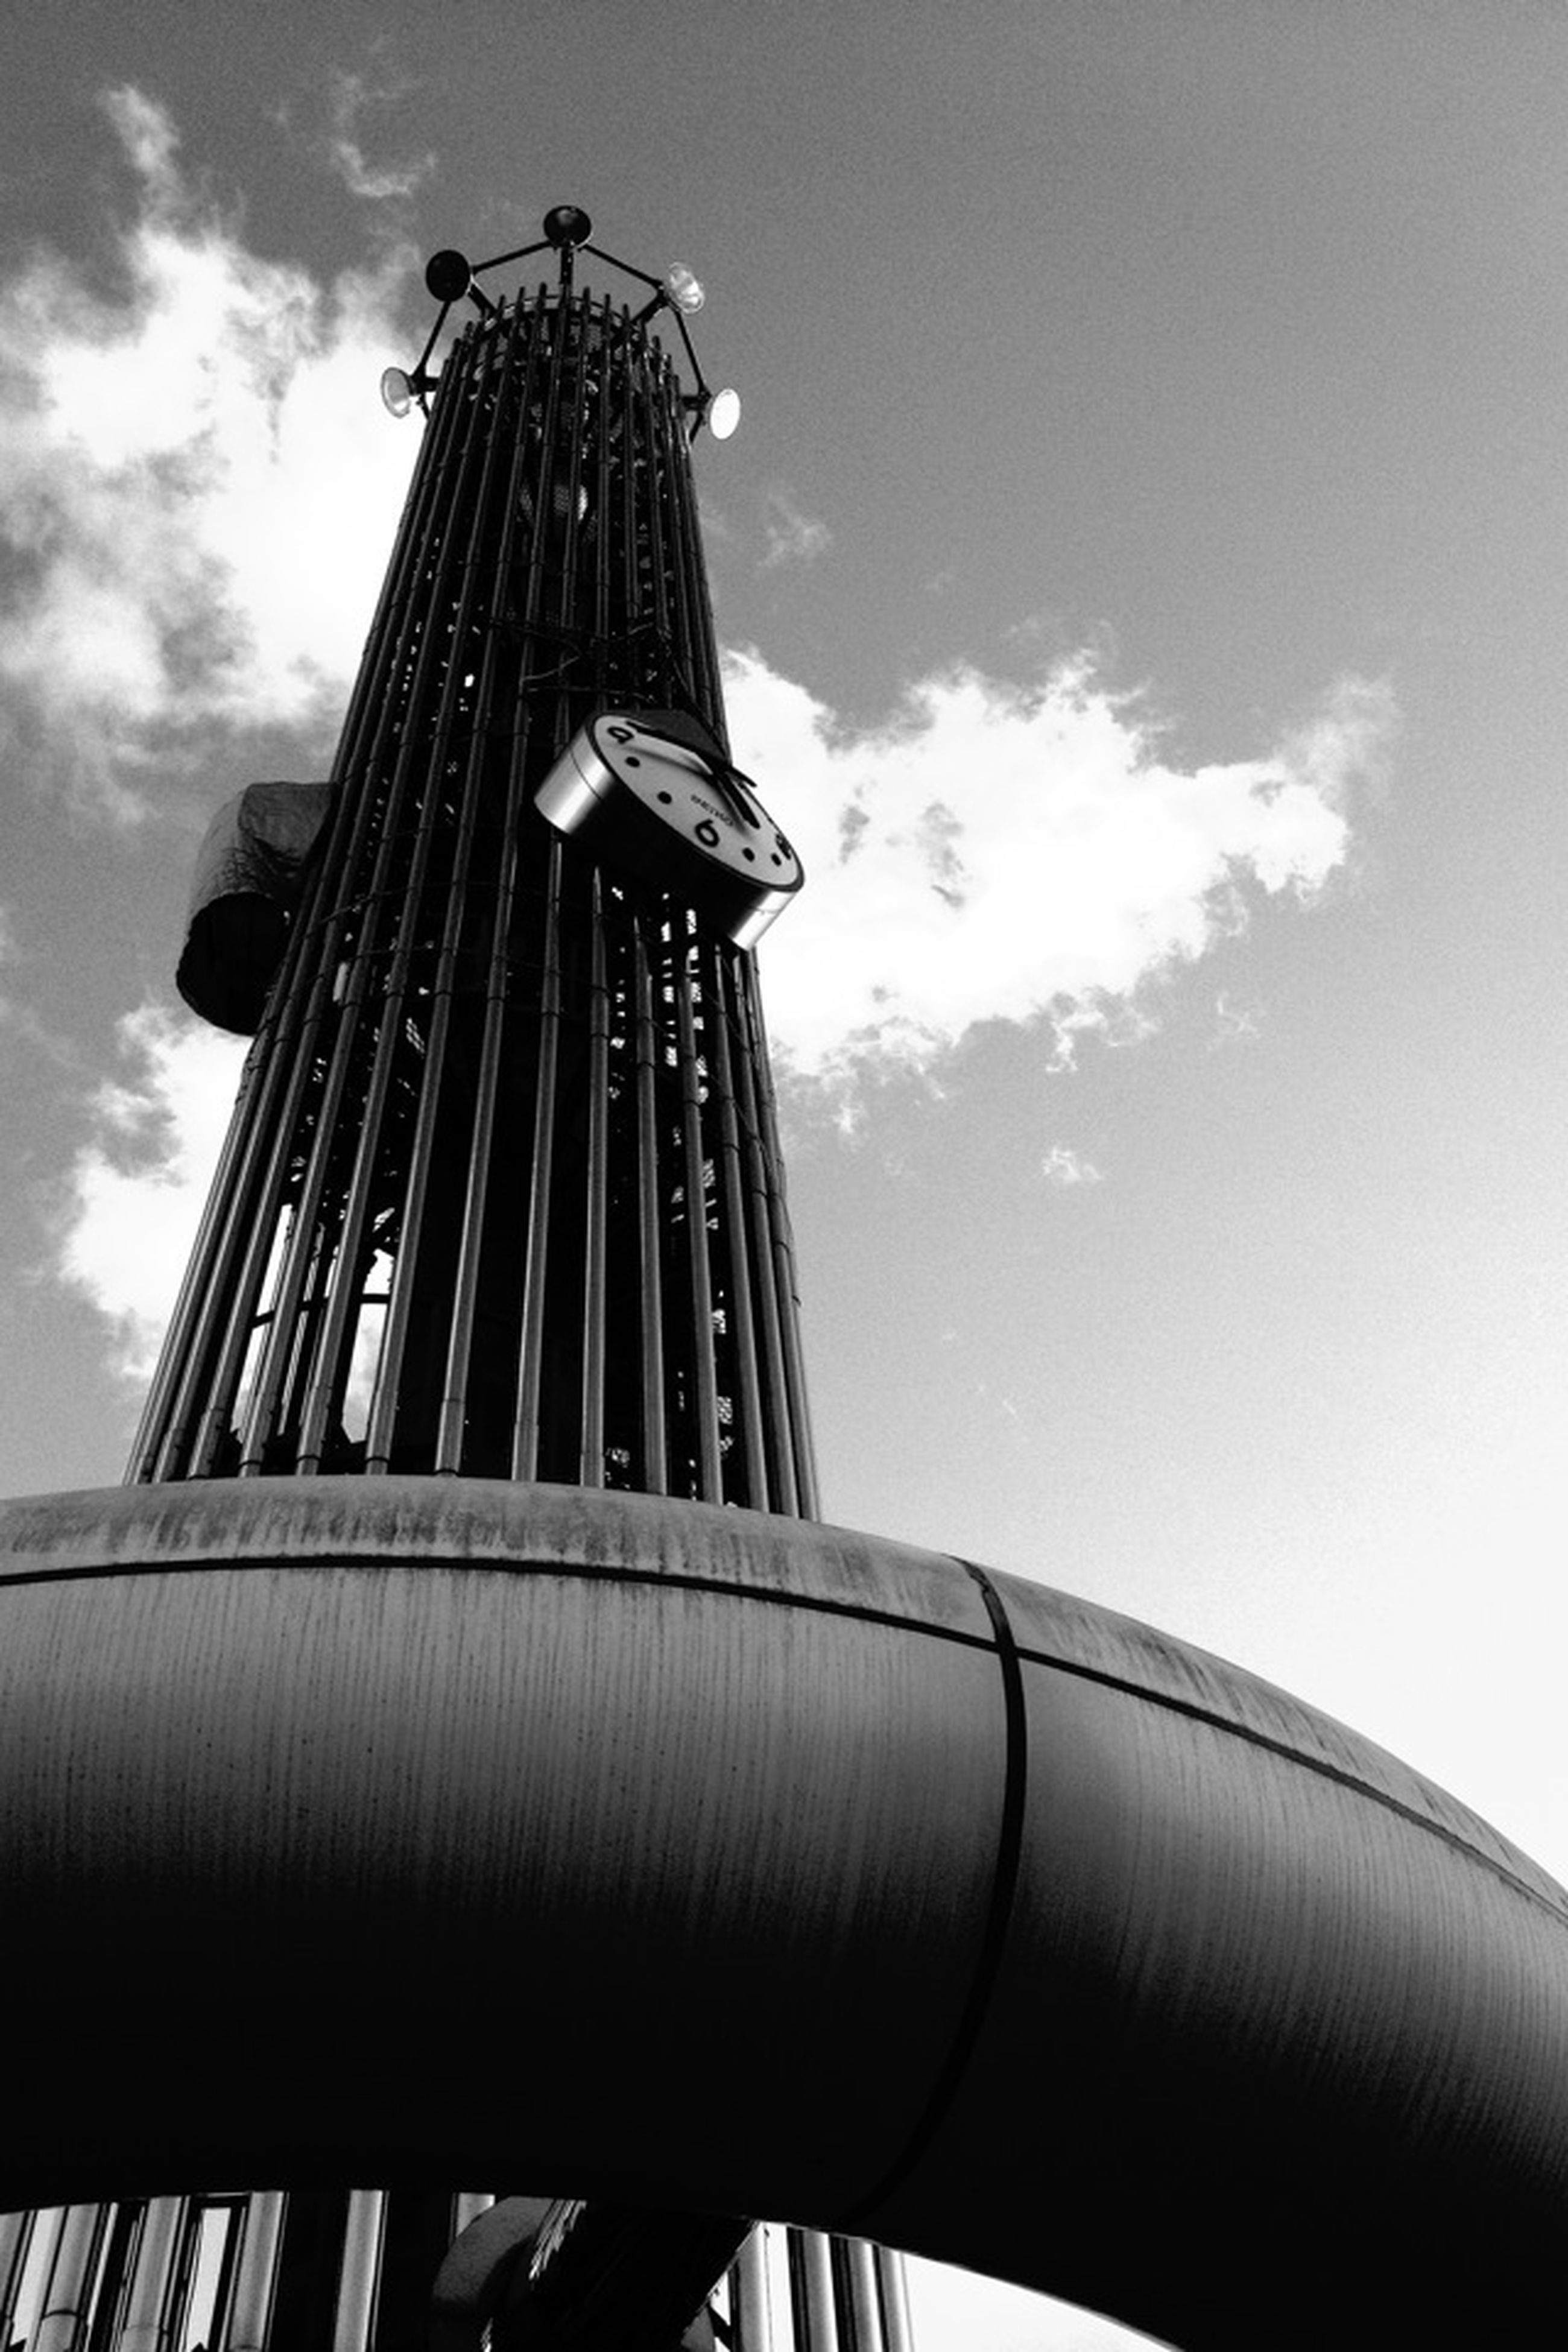 low angle view, architecture, sky, built structure, building exterior, cloud - sky, cloud, tower, tall - high, cloudy, day, no people, outdoors, metal, metallic, building, architectural feature, tall, high section, sunlight